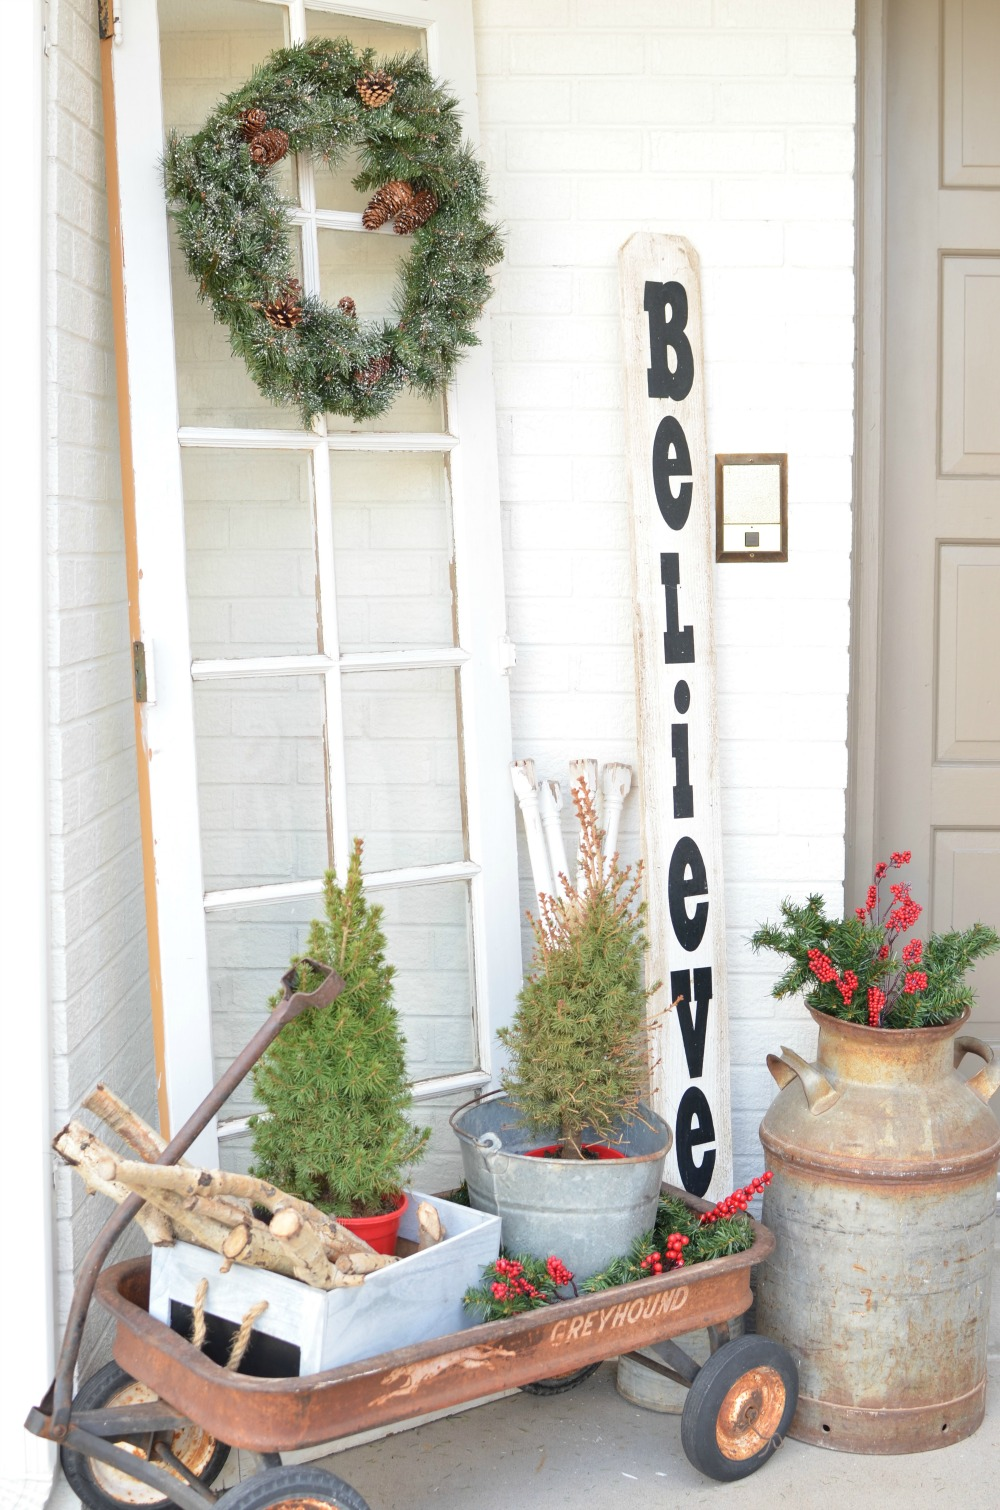 Christmas on the Front Porch. Vintage Christmas decor ideas for your front porch